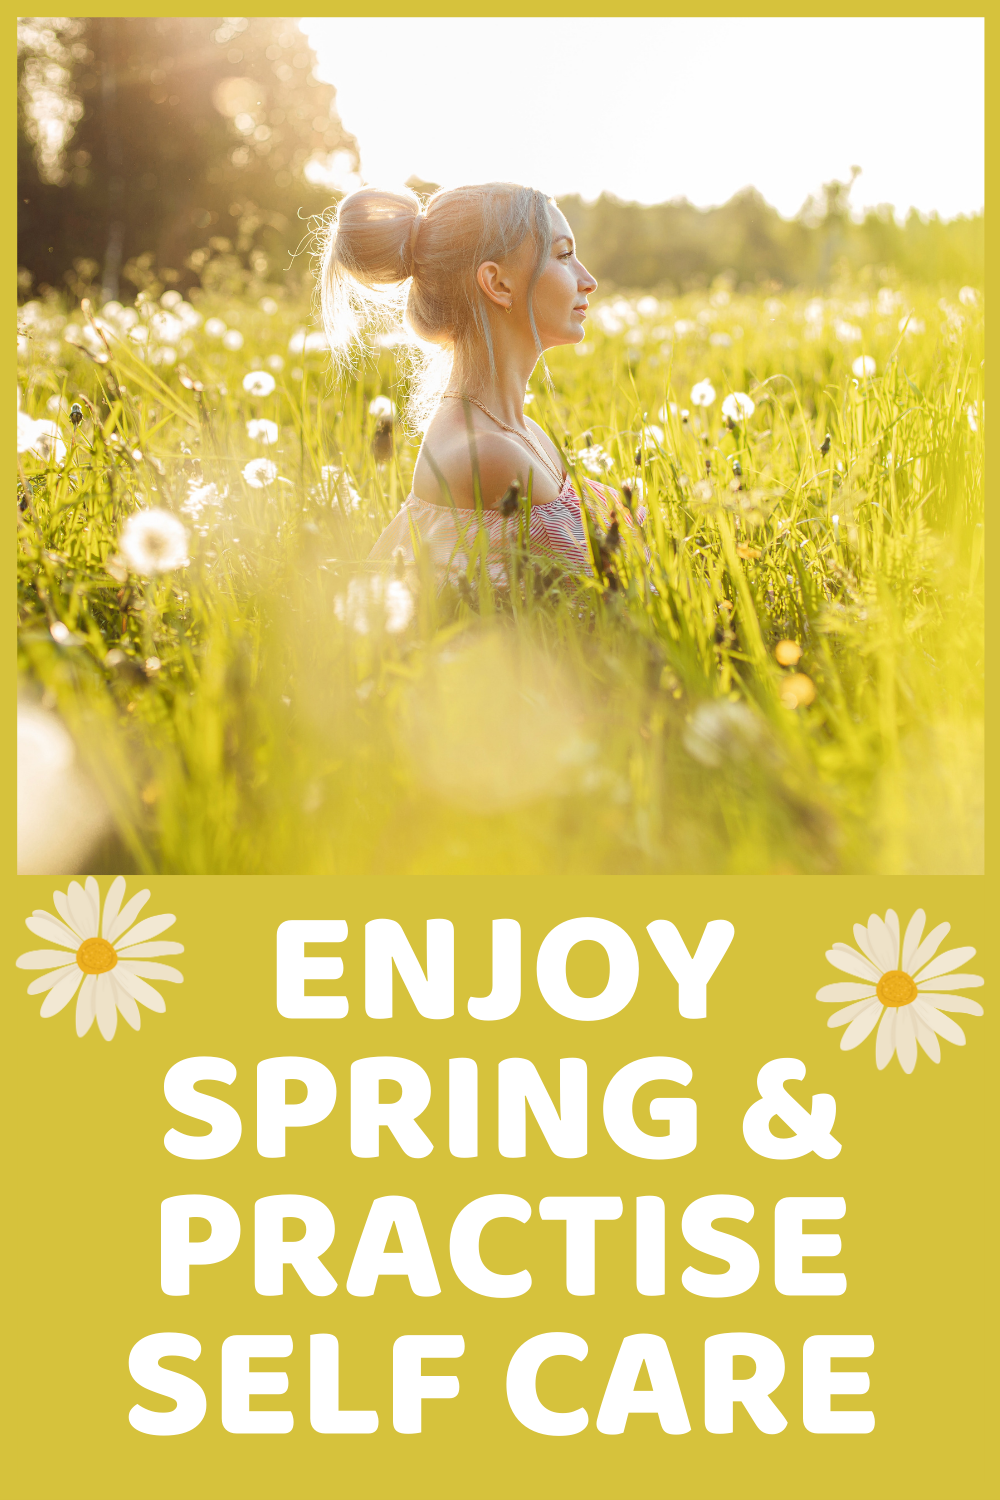 Spring inspiration, spring self care, make the most of spring